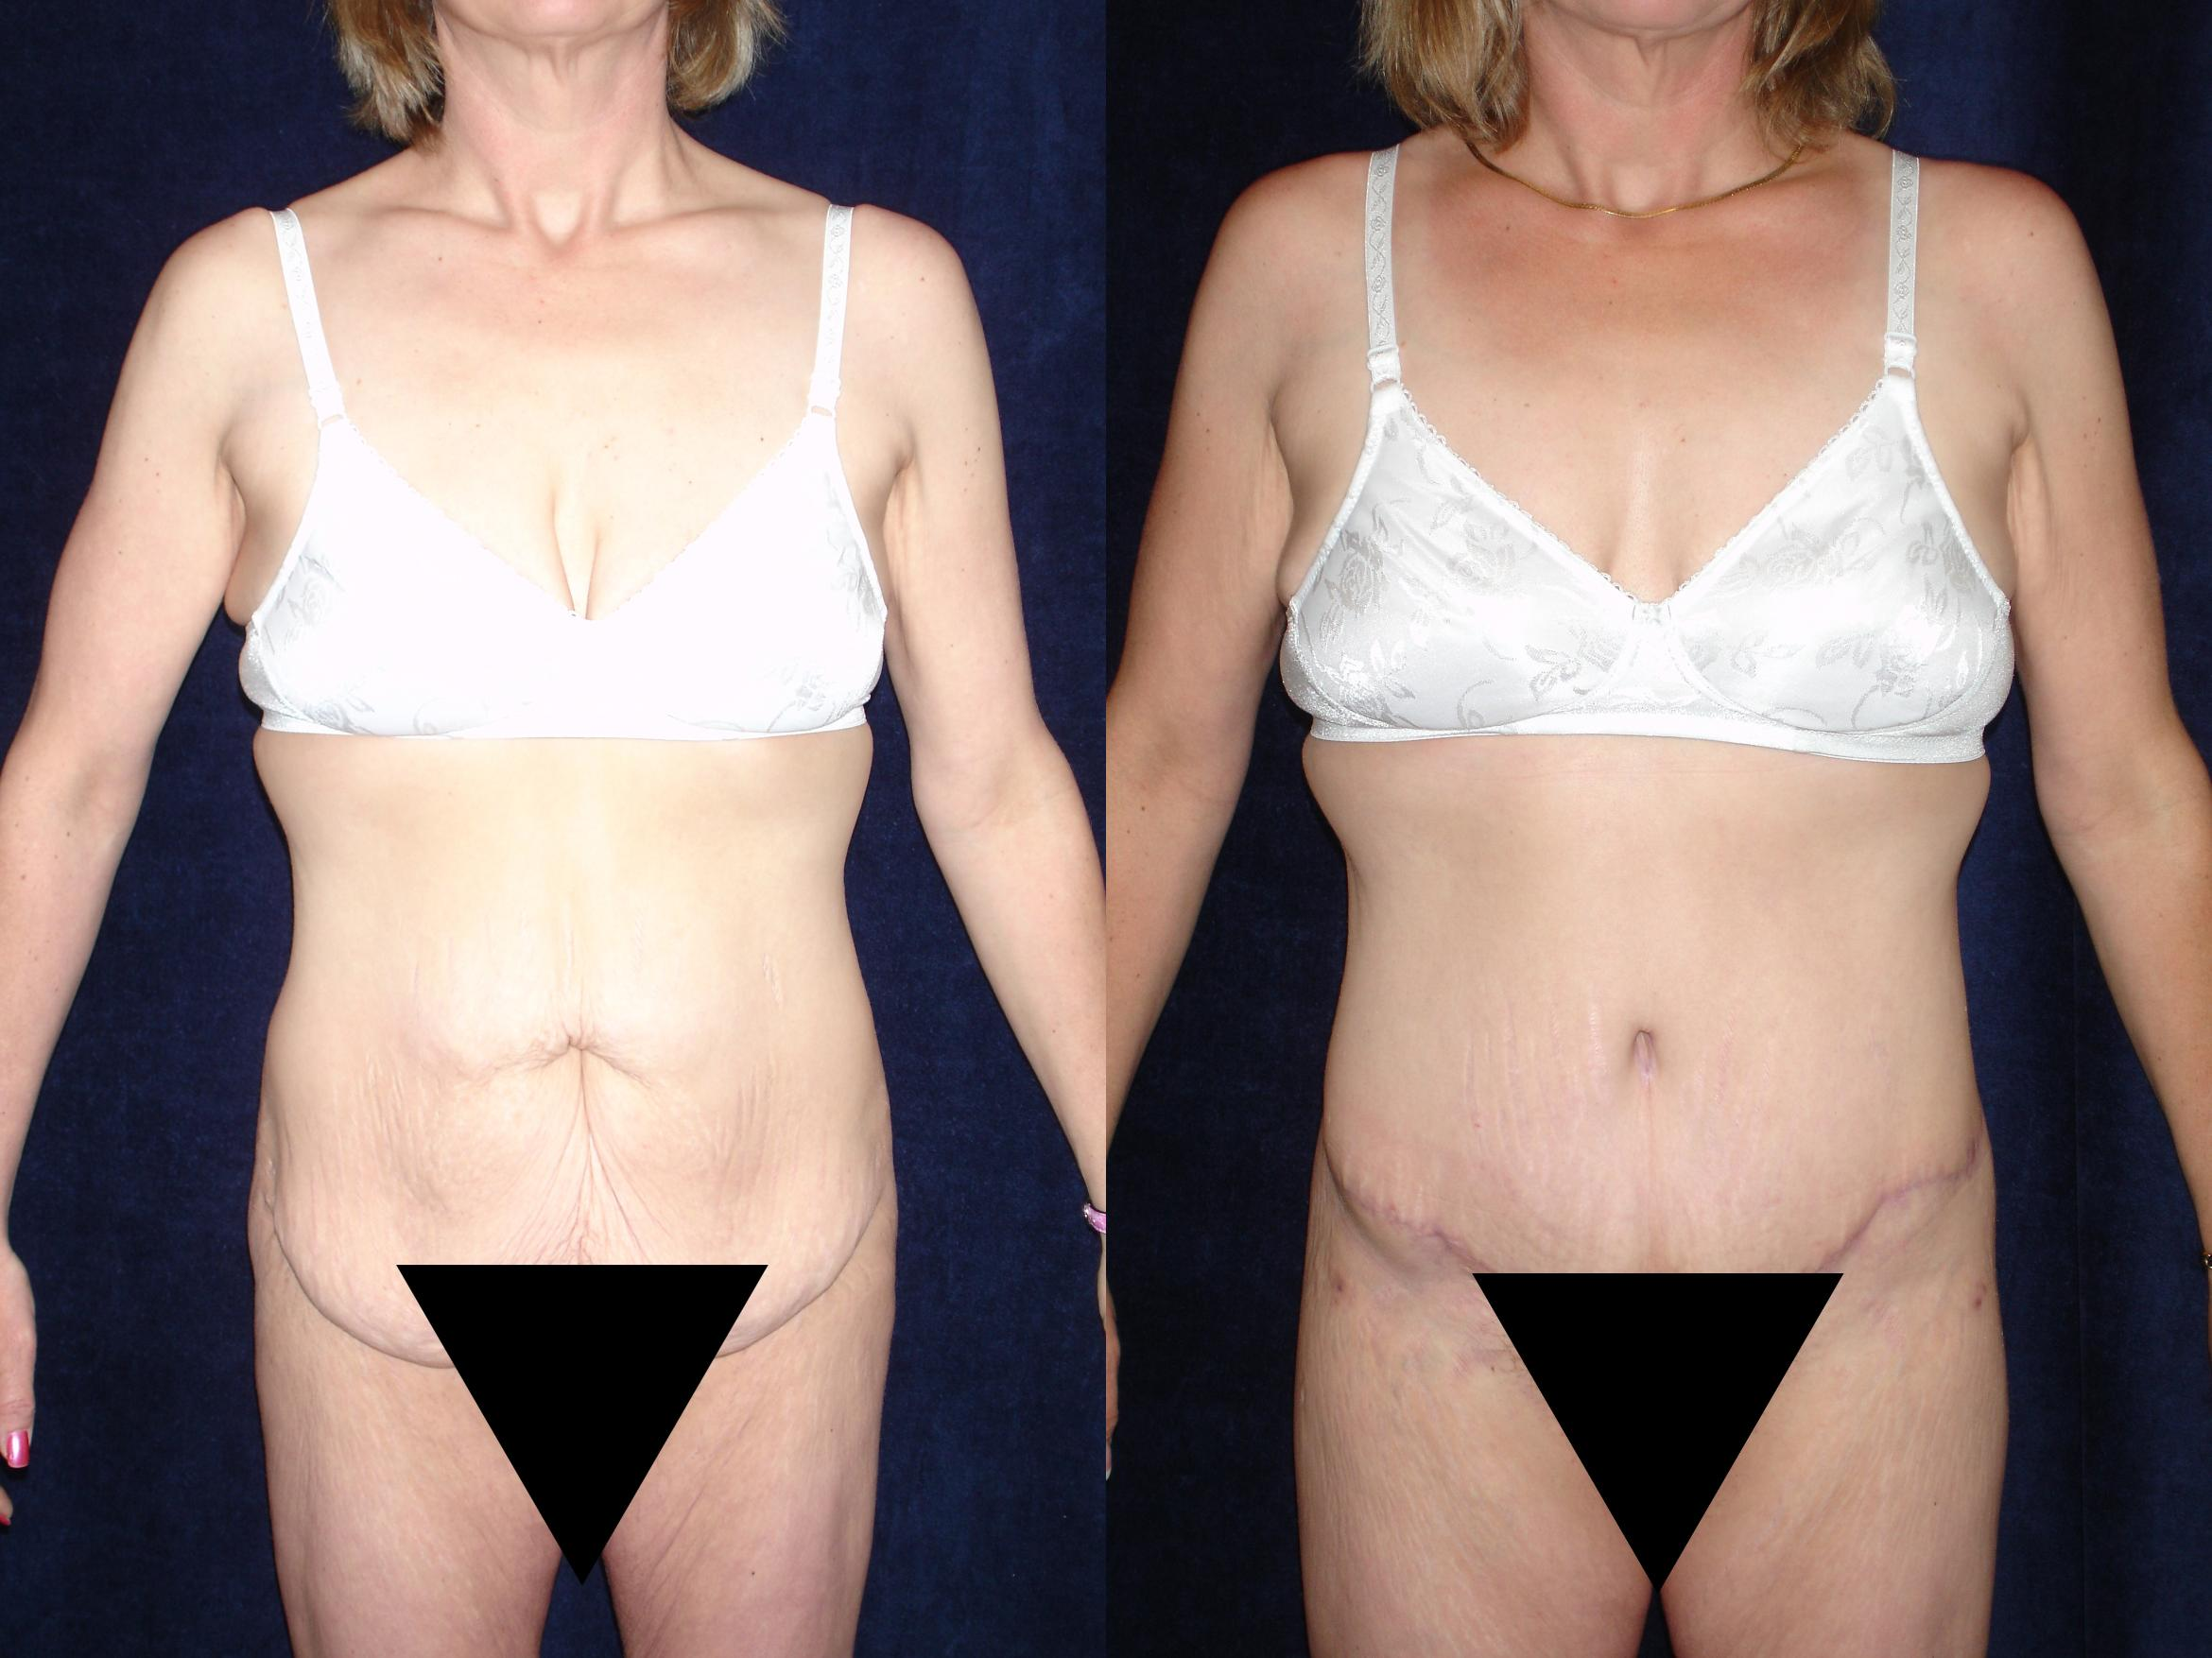 Body Contouring Before & After Photo | San Francisco, CA | Kaiser Permanente Cosmetic Services